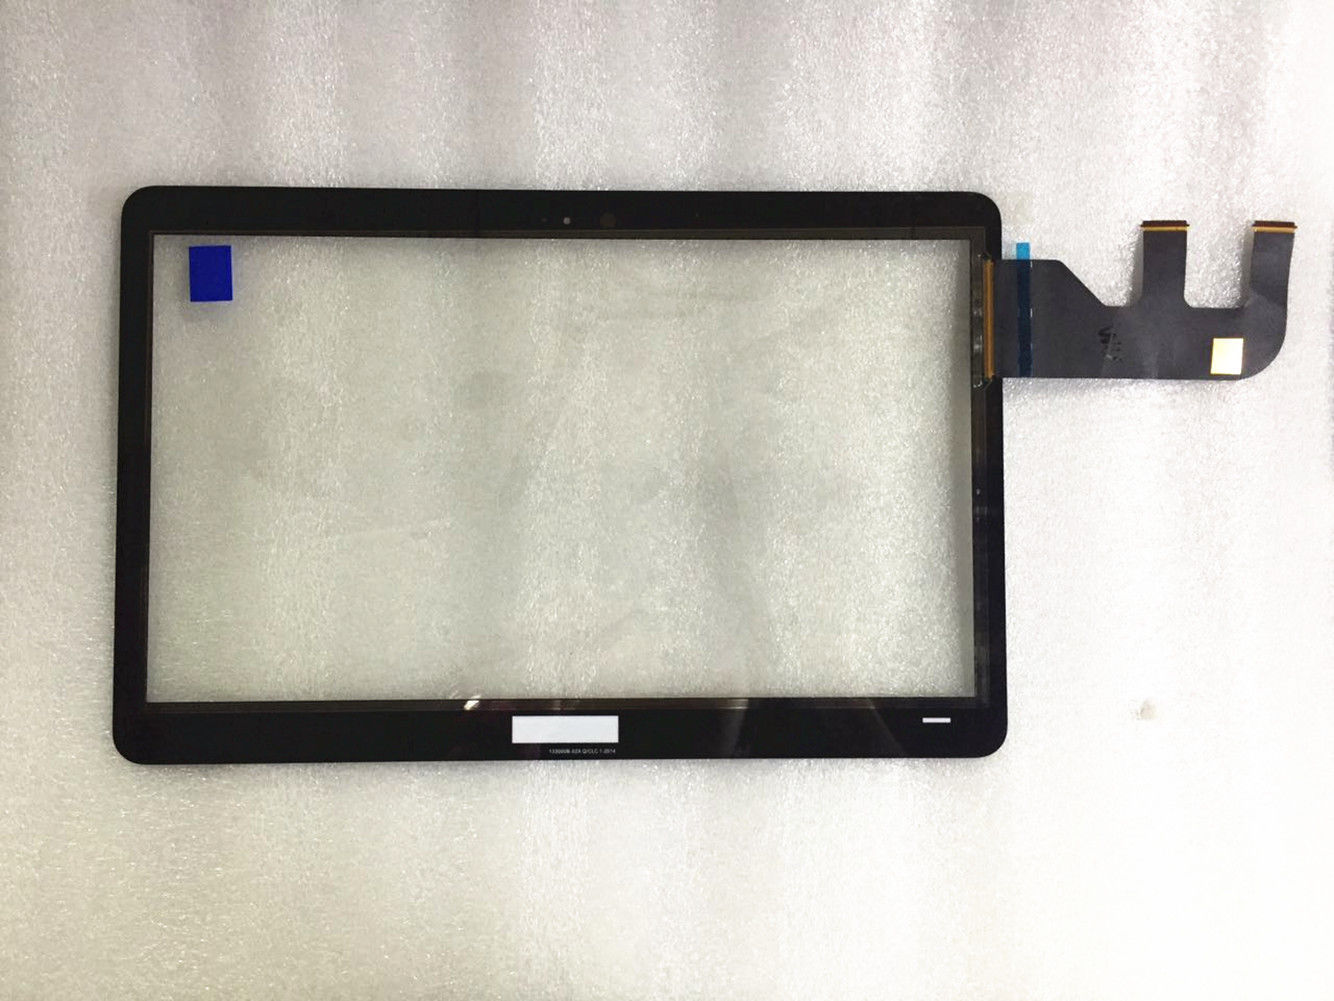 "13.3"" Touch Screen Digitizer Glass Sensor Panel Laptop Housings Touchpads Replacement Parts for Asus Q303 Q303UA TP301U TP301UA Pakistan"